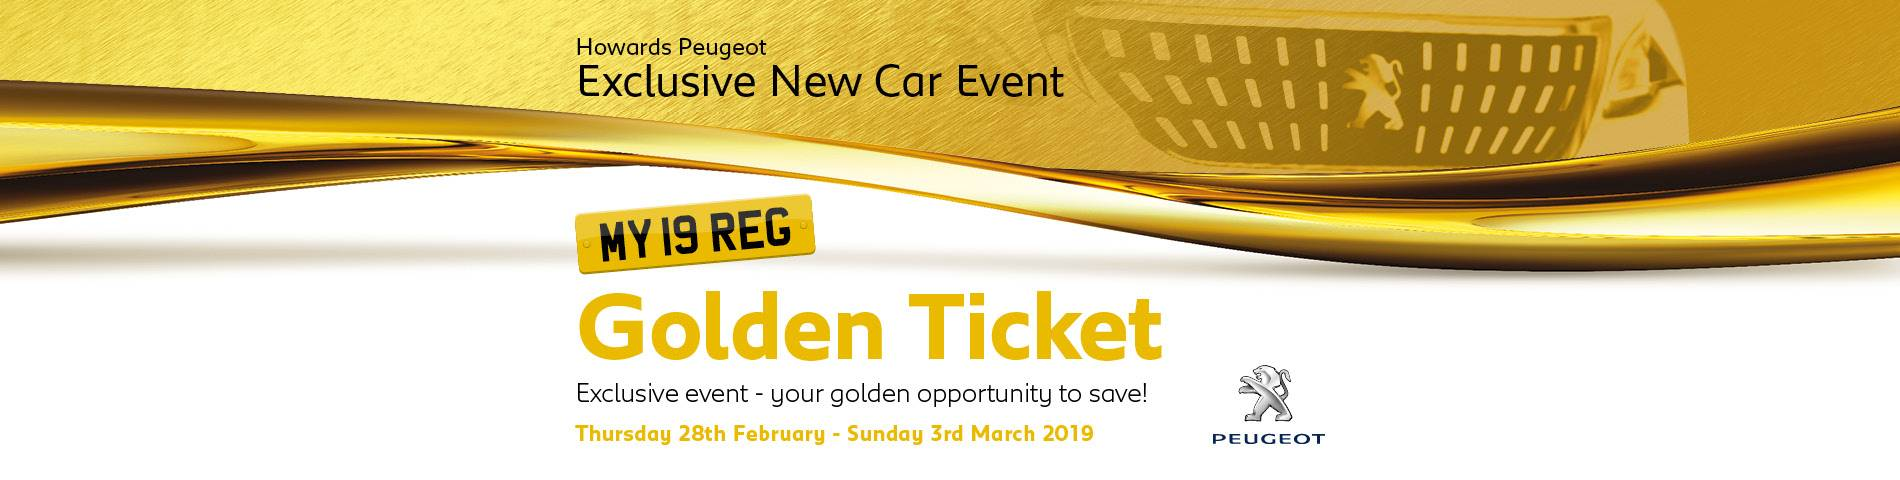 Peugeot Golden Ticket